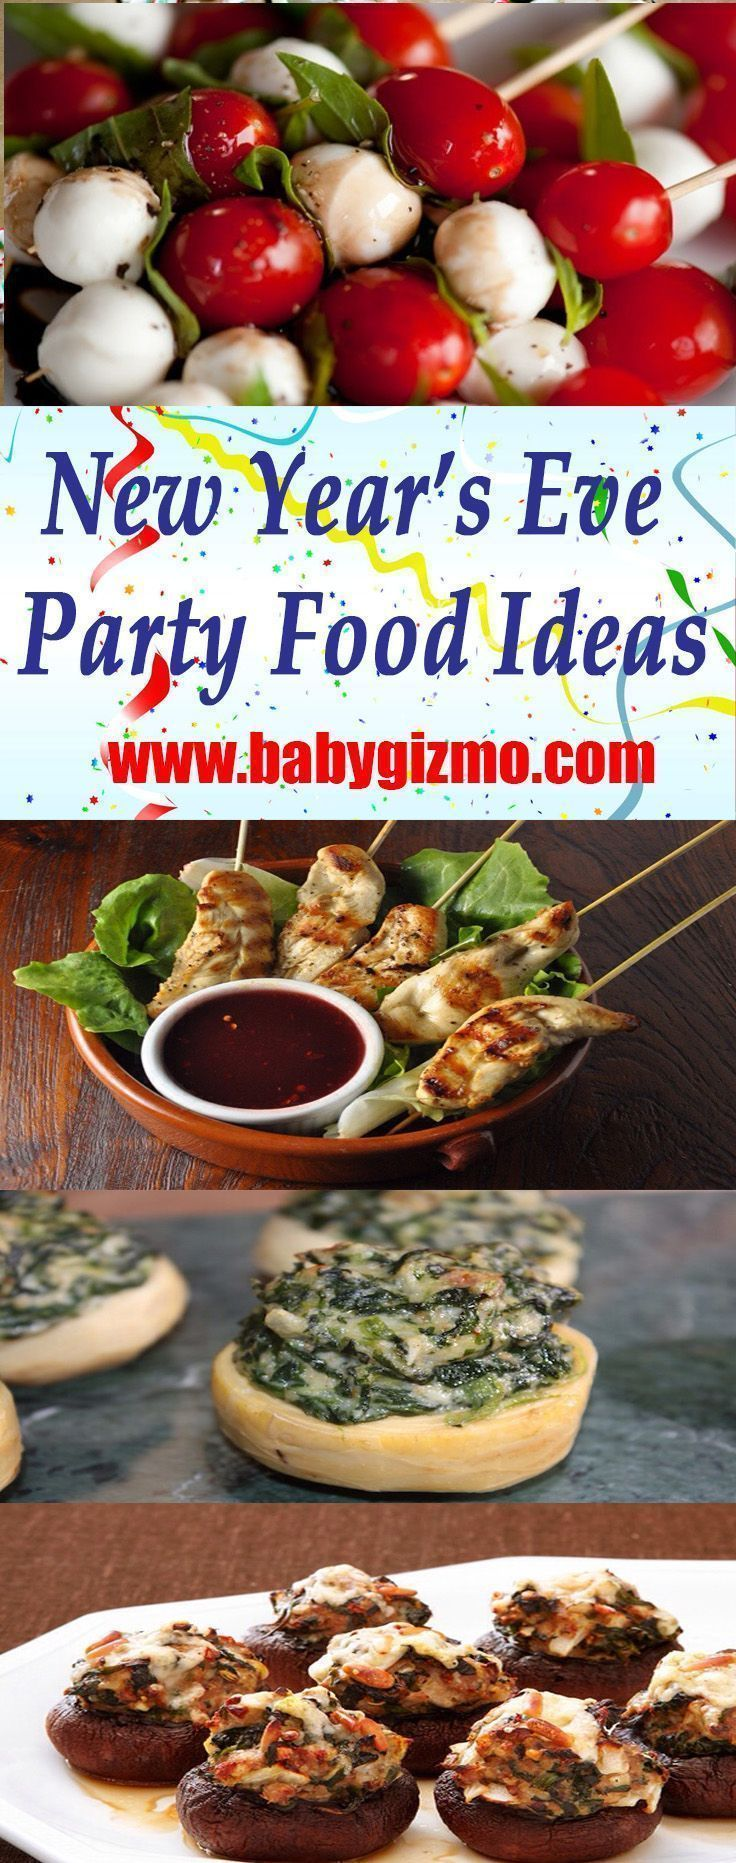 Fingerfood-Ideen für Silvesterpartys - Kreativ #newyearsevefood #NYE #Party # ... #newyearsevefood